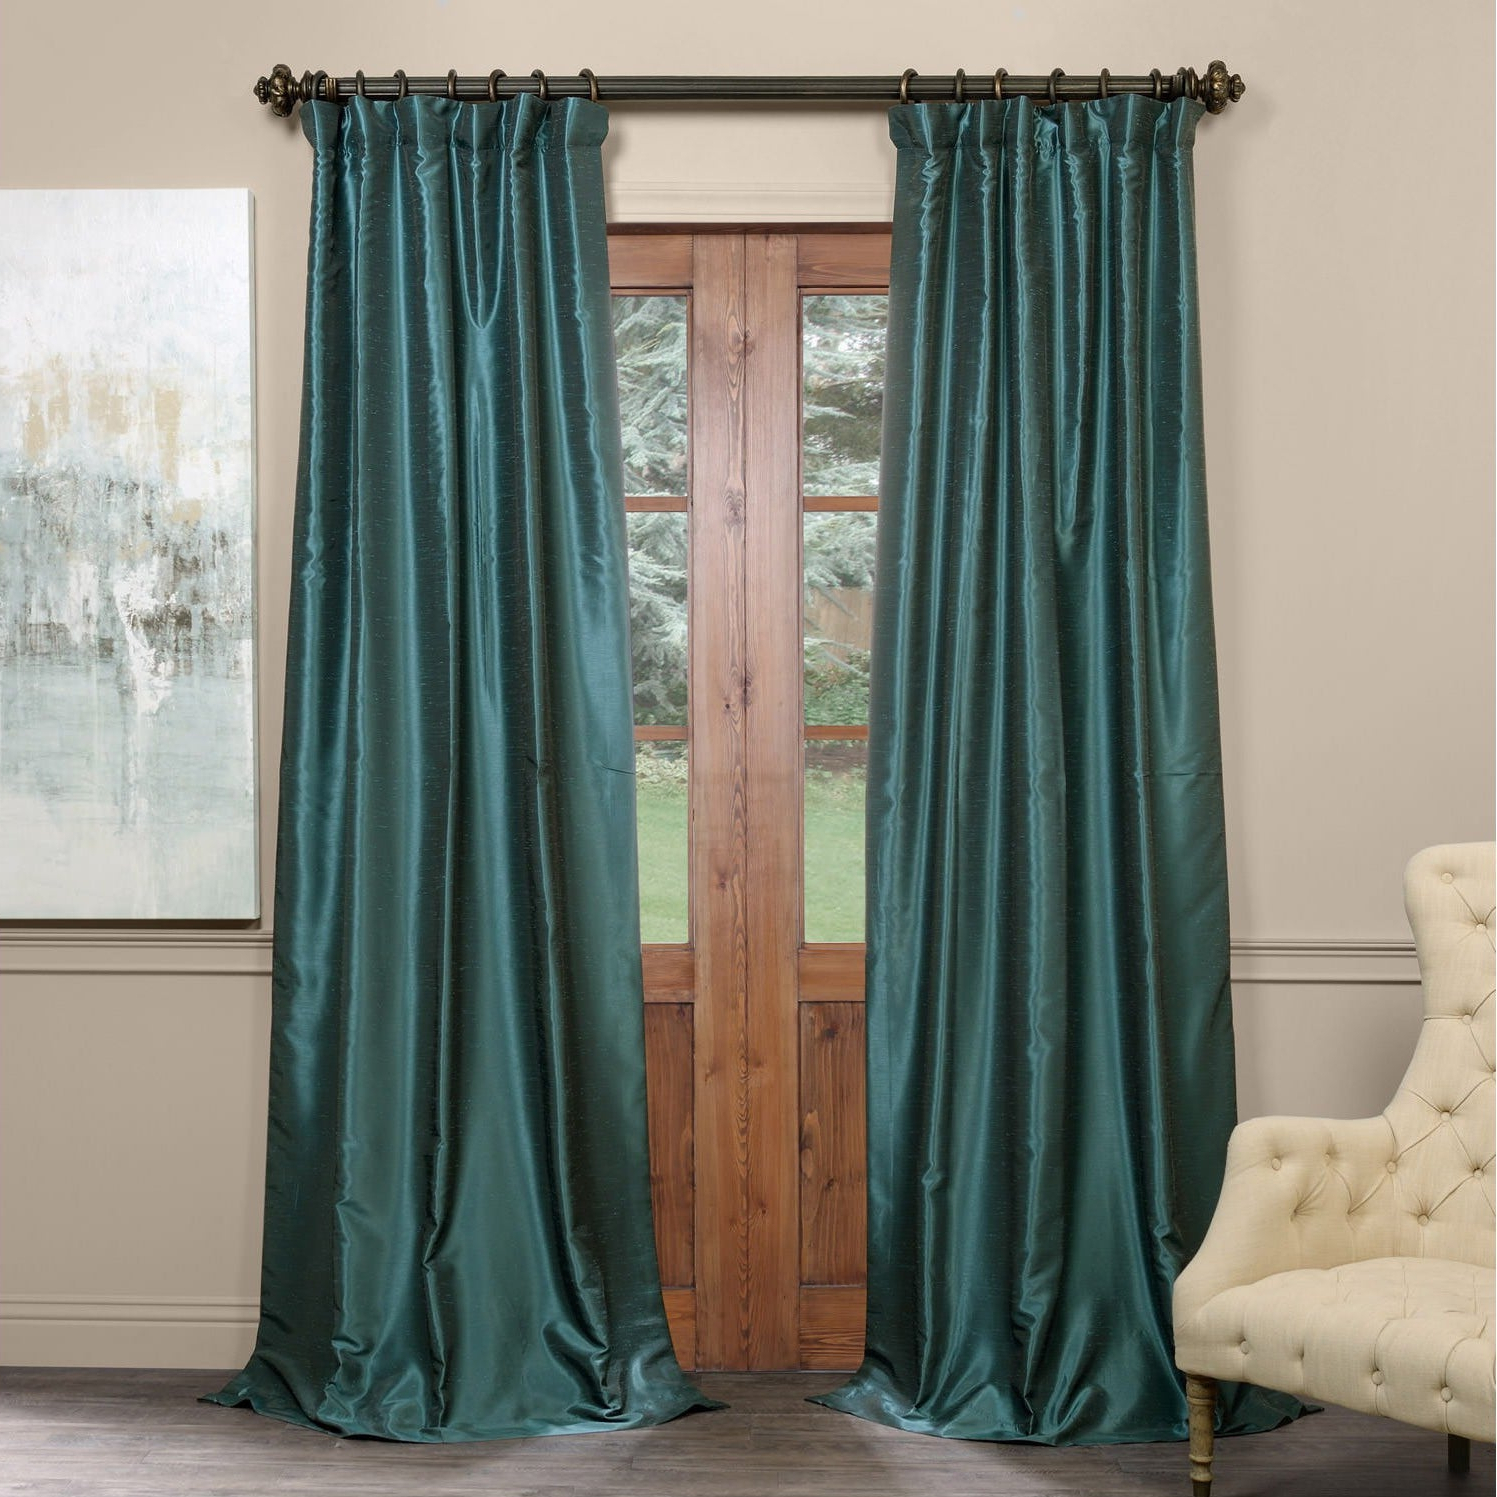 Well Known Exclusive Fabrics True Blackout Vintage Textured Faux Dupioni Silk Curtain Panel Inside Vintage Textured Faux Dupioni Silk Curtain Panels (View 13 of 20)